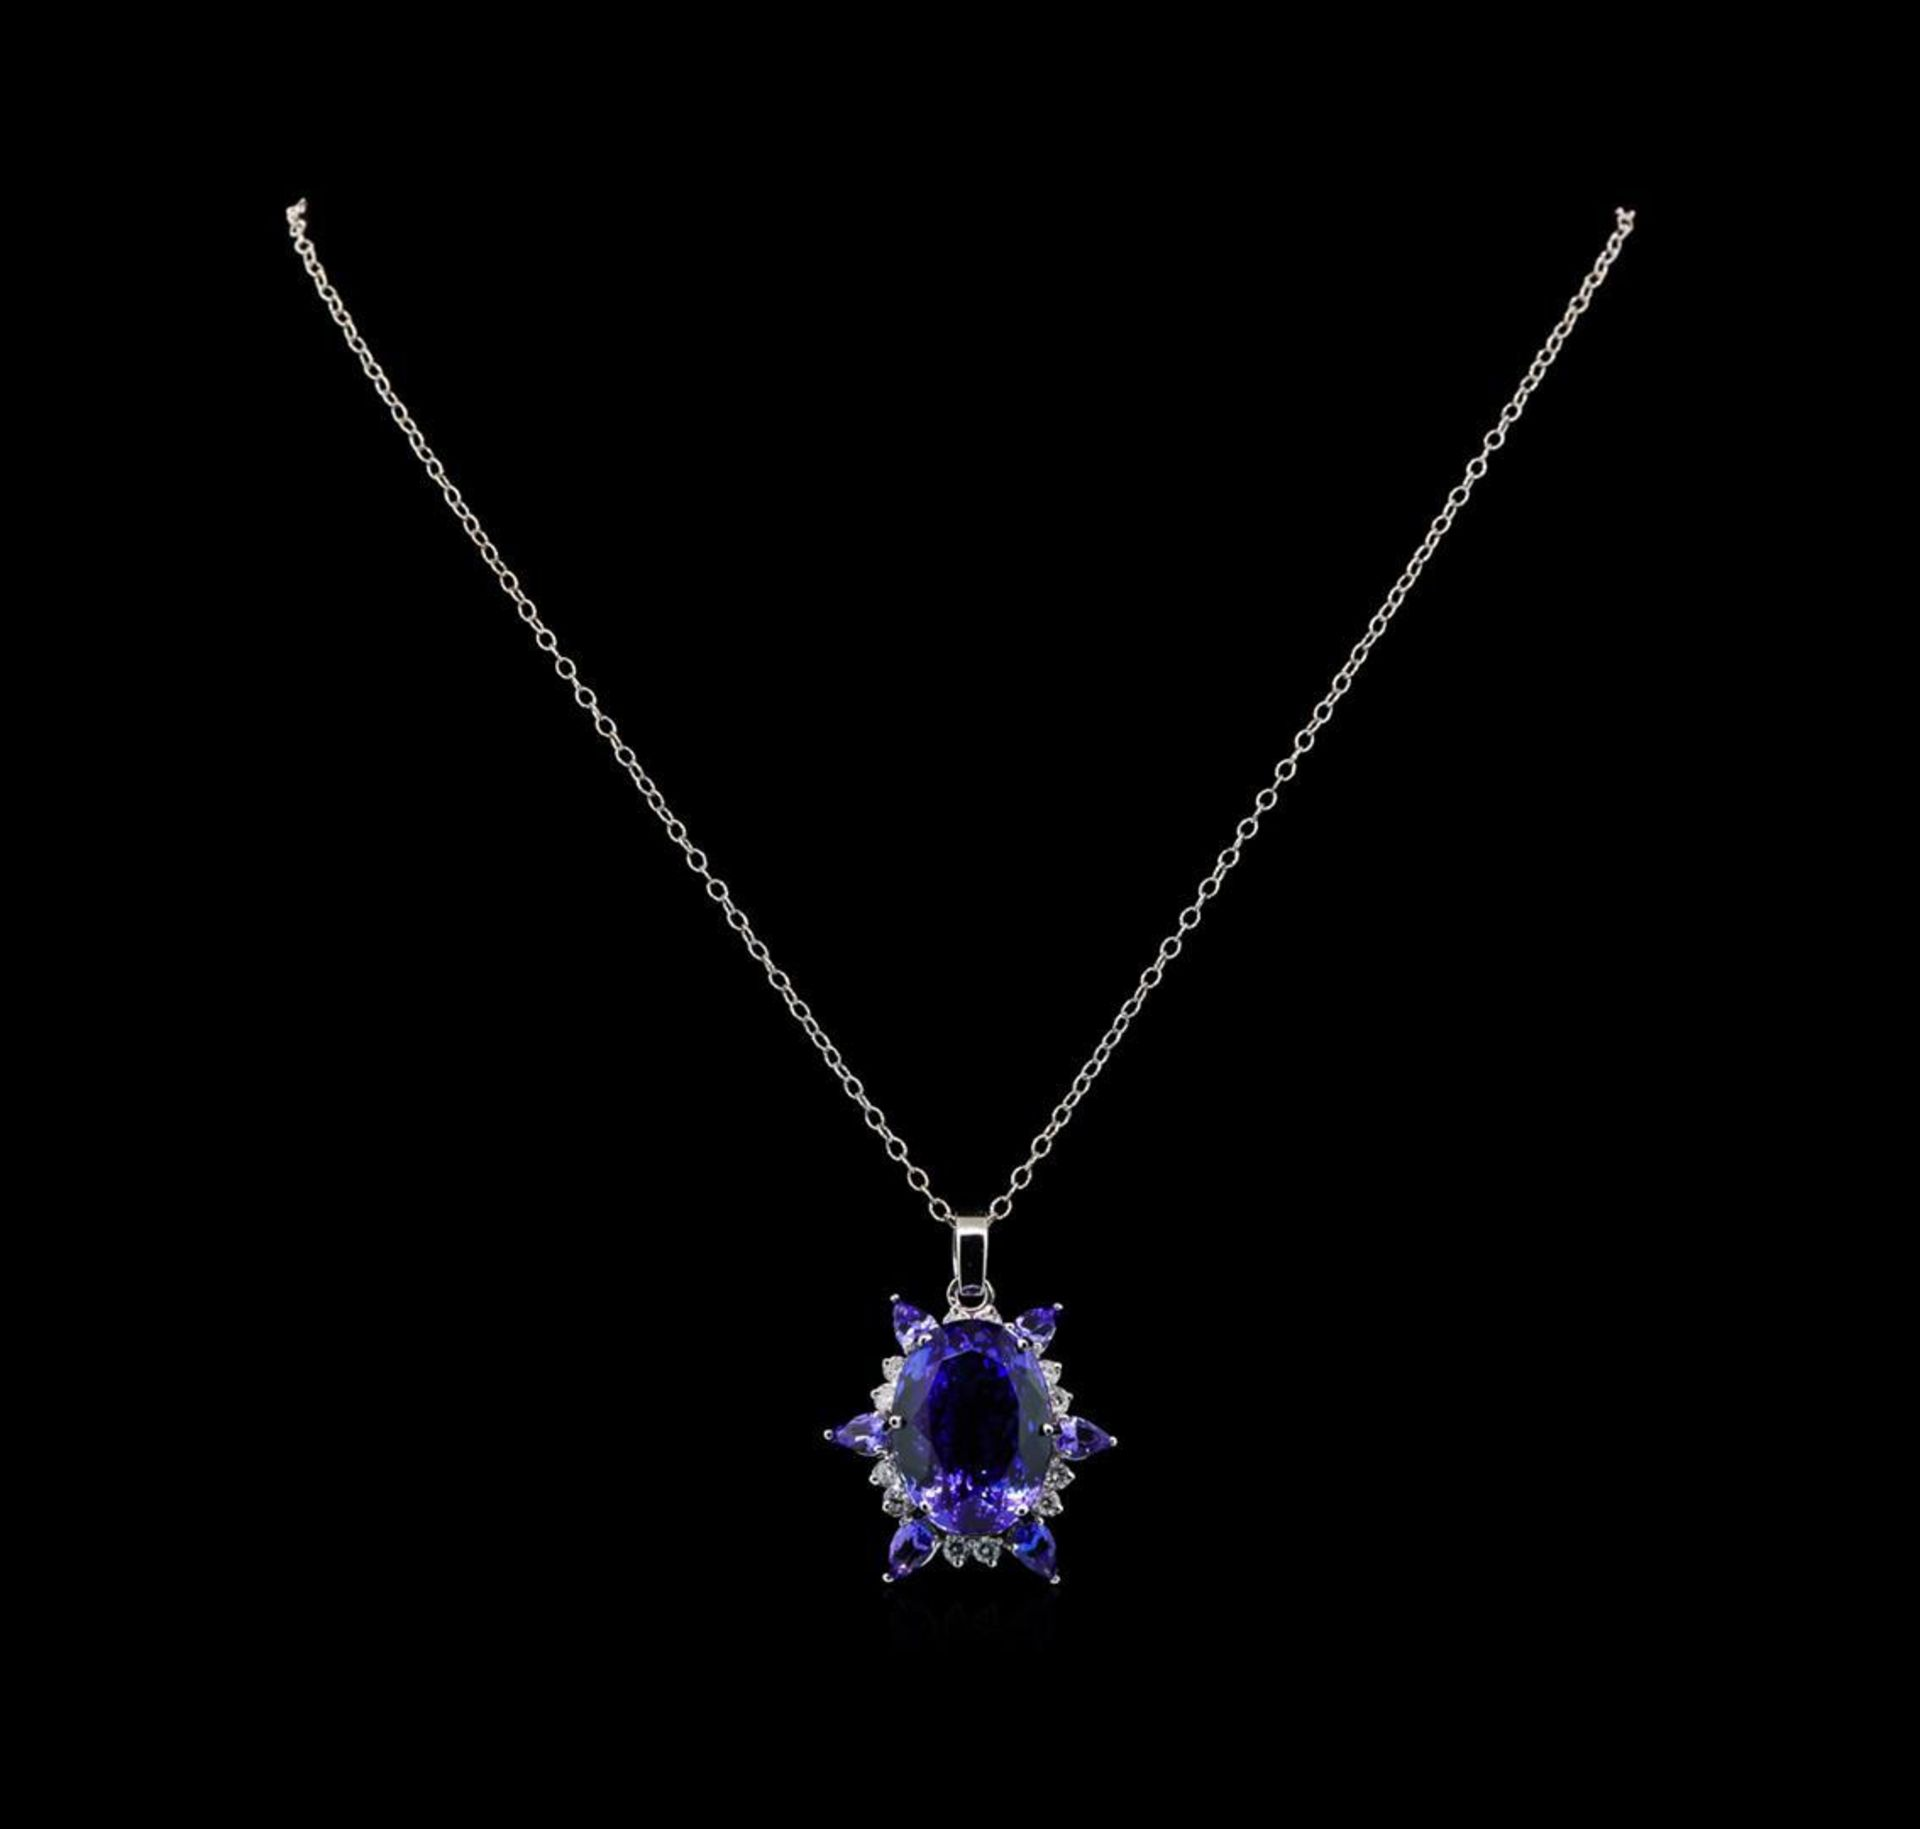 GIA Cert 28.43 ctw Tanzanite and Diamond Pendant With Chain - 14KT White Gold - Image 2 of 4